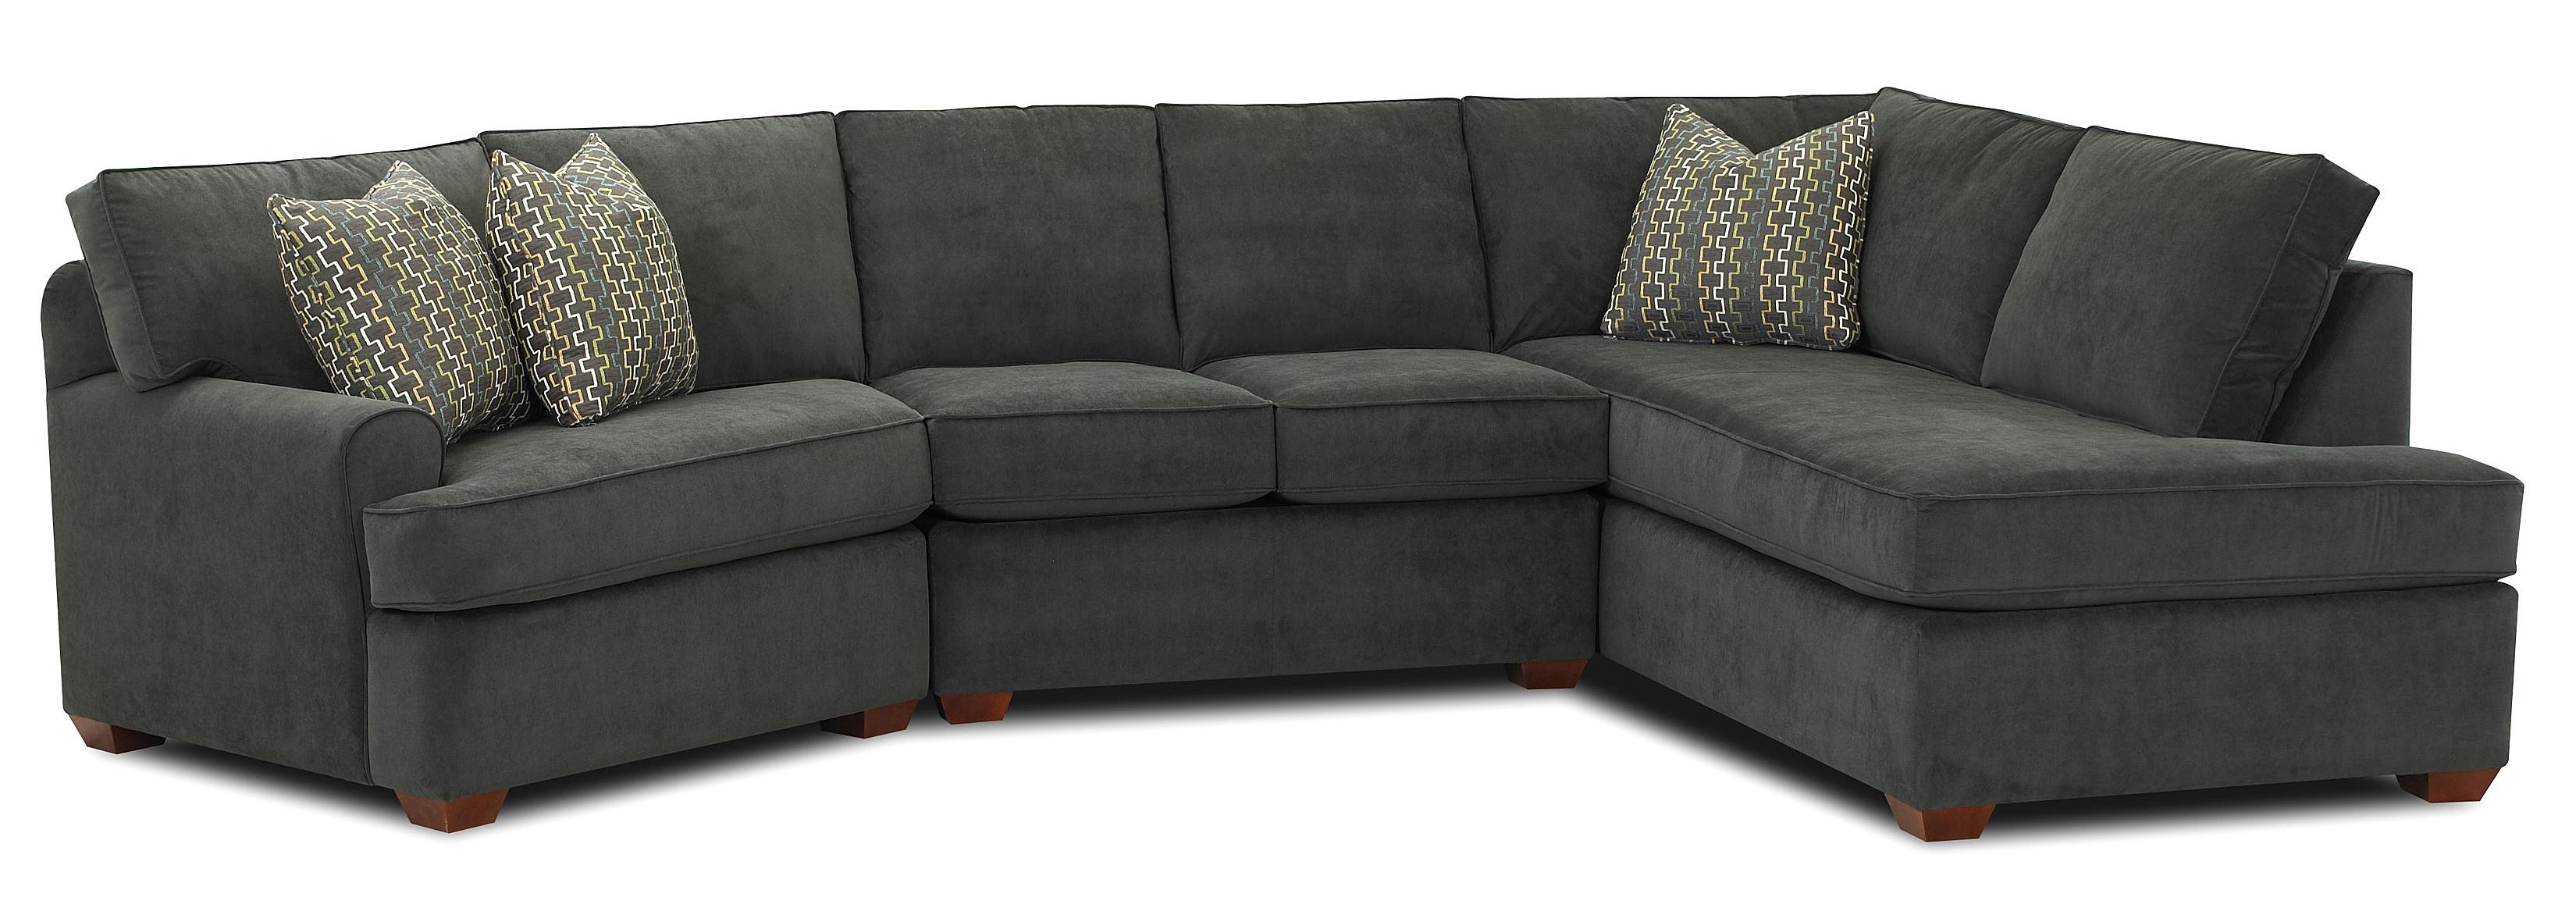 Klaussner Hybrid Sectional Sofa With Right Facing Sofa Chaise | Fmg With Regard To Sectional Sofas With Chaise (View 8 of 15)